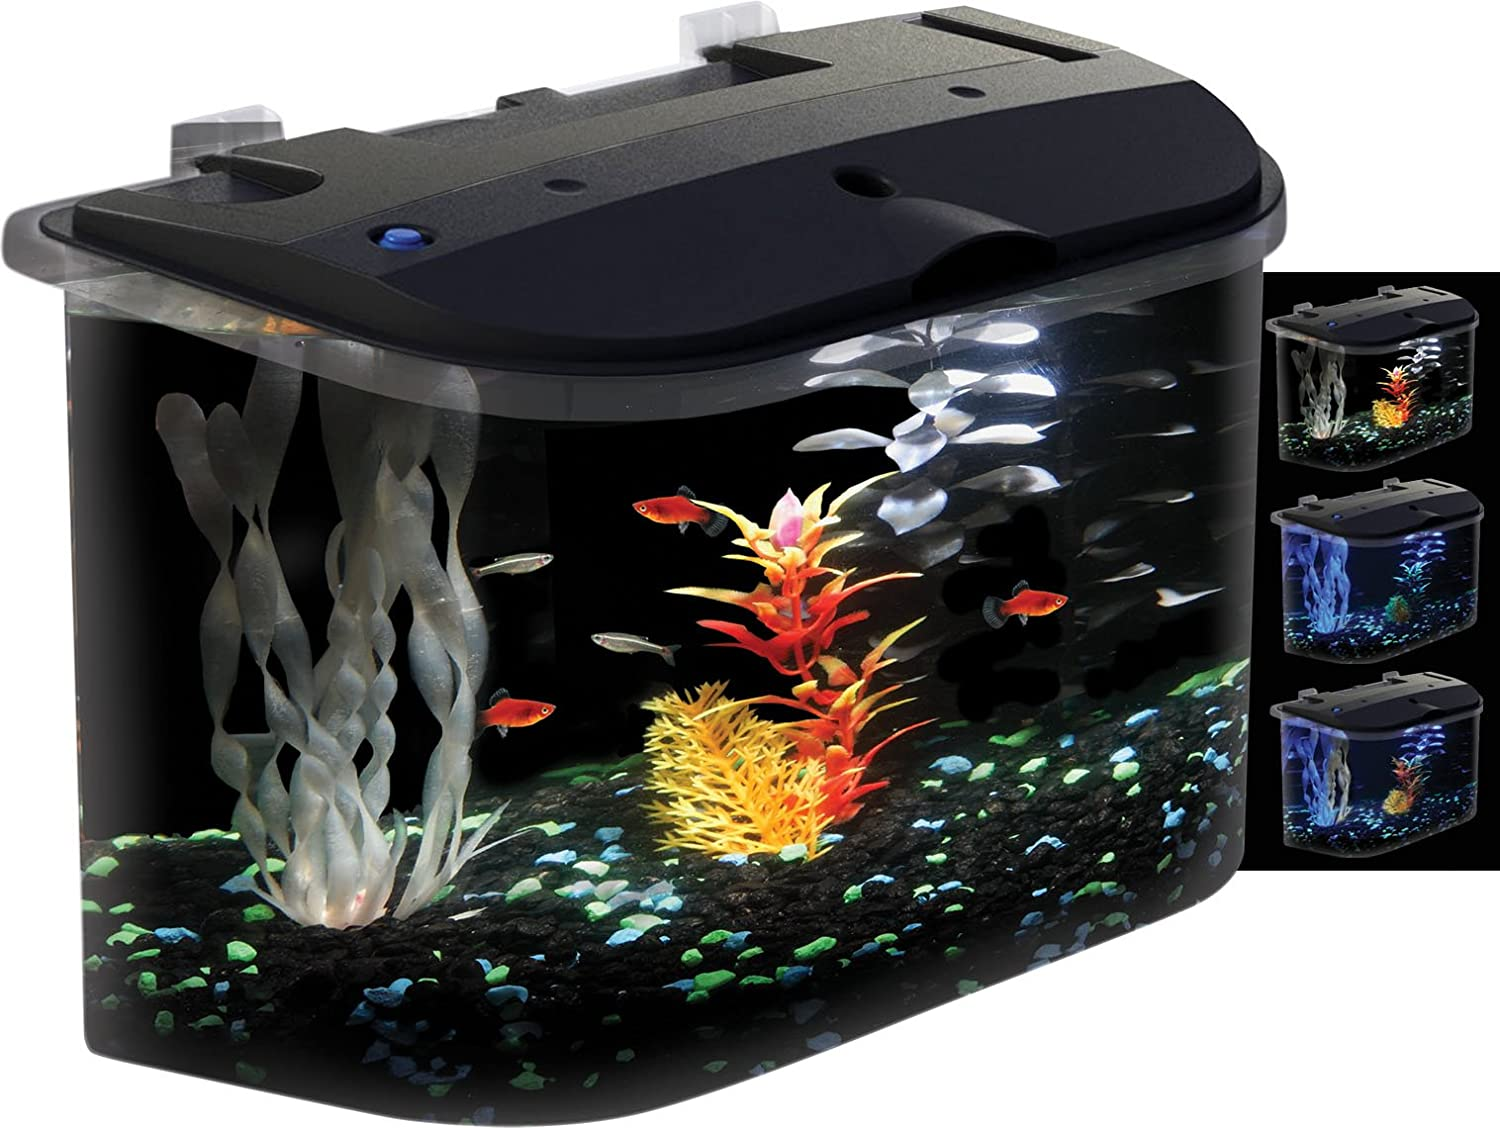 Fish aquarium price india - Buy Aquarius Aq15005 Aquarius 5 Rounded 5 Gallon Aquarium Kit Online At Low Prices In India Amazon In